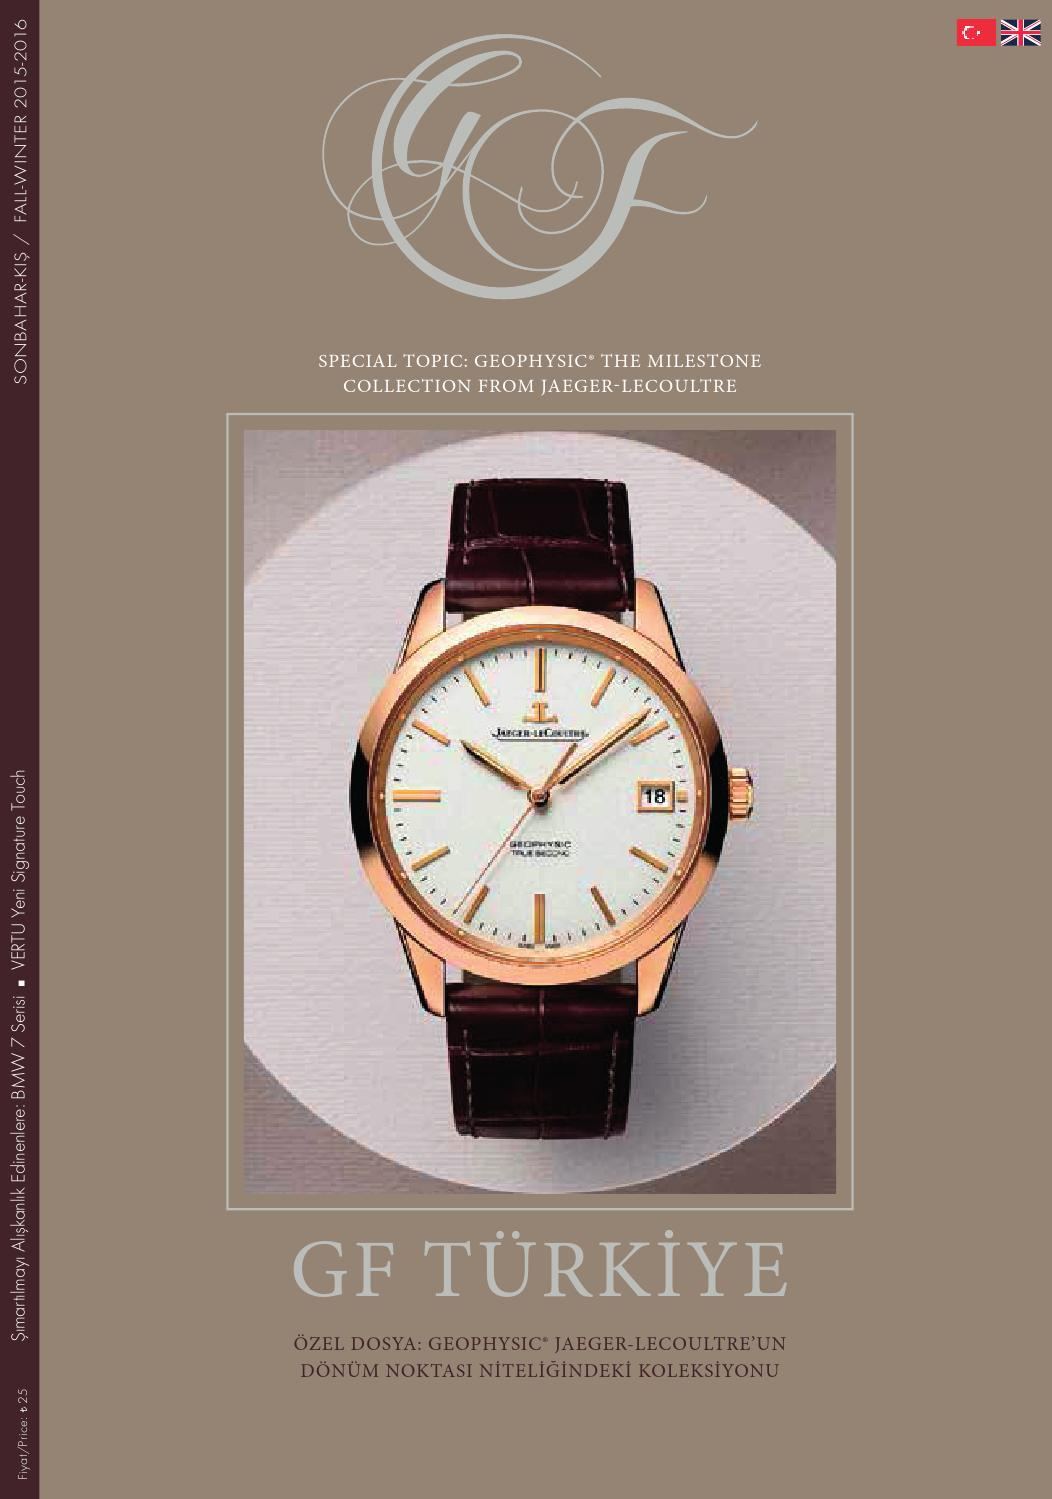 Watching Endless Armada Entering >> Gf Turkiye For Connaisseurs Fall Winter 2015 By Gf Luxury Issuu